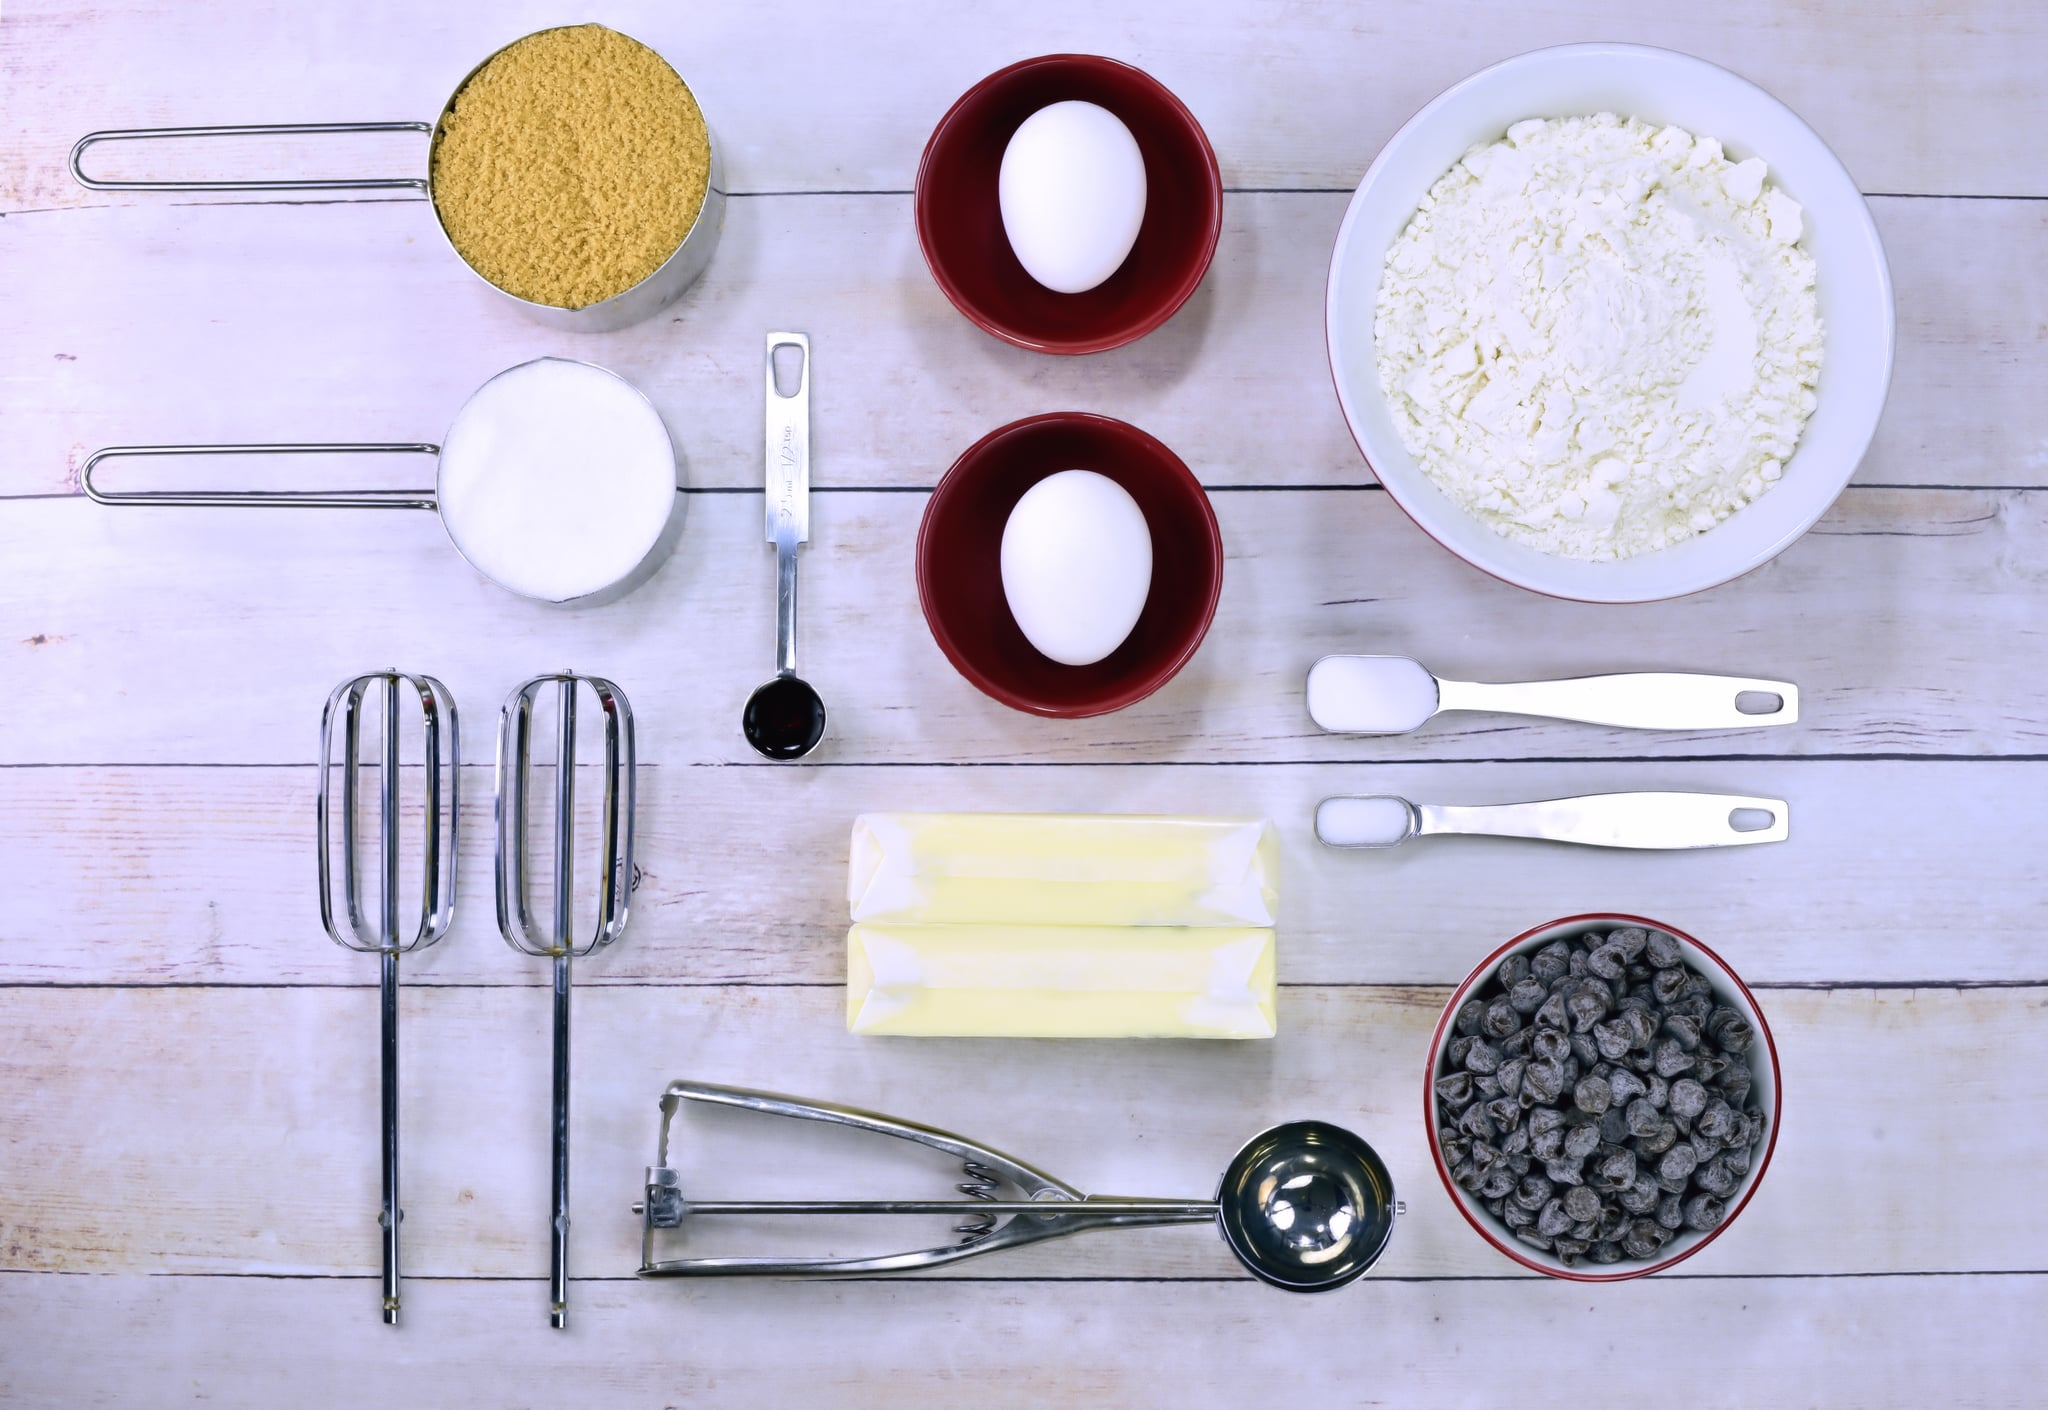 All of the ingredients to make chocolate chip cookies including sugar, flour, butter, eggs and chocolate chips